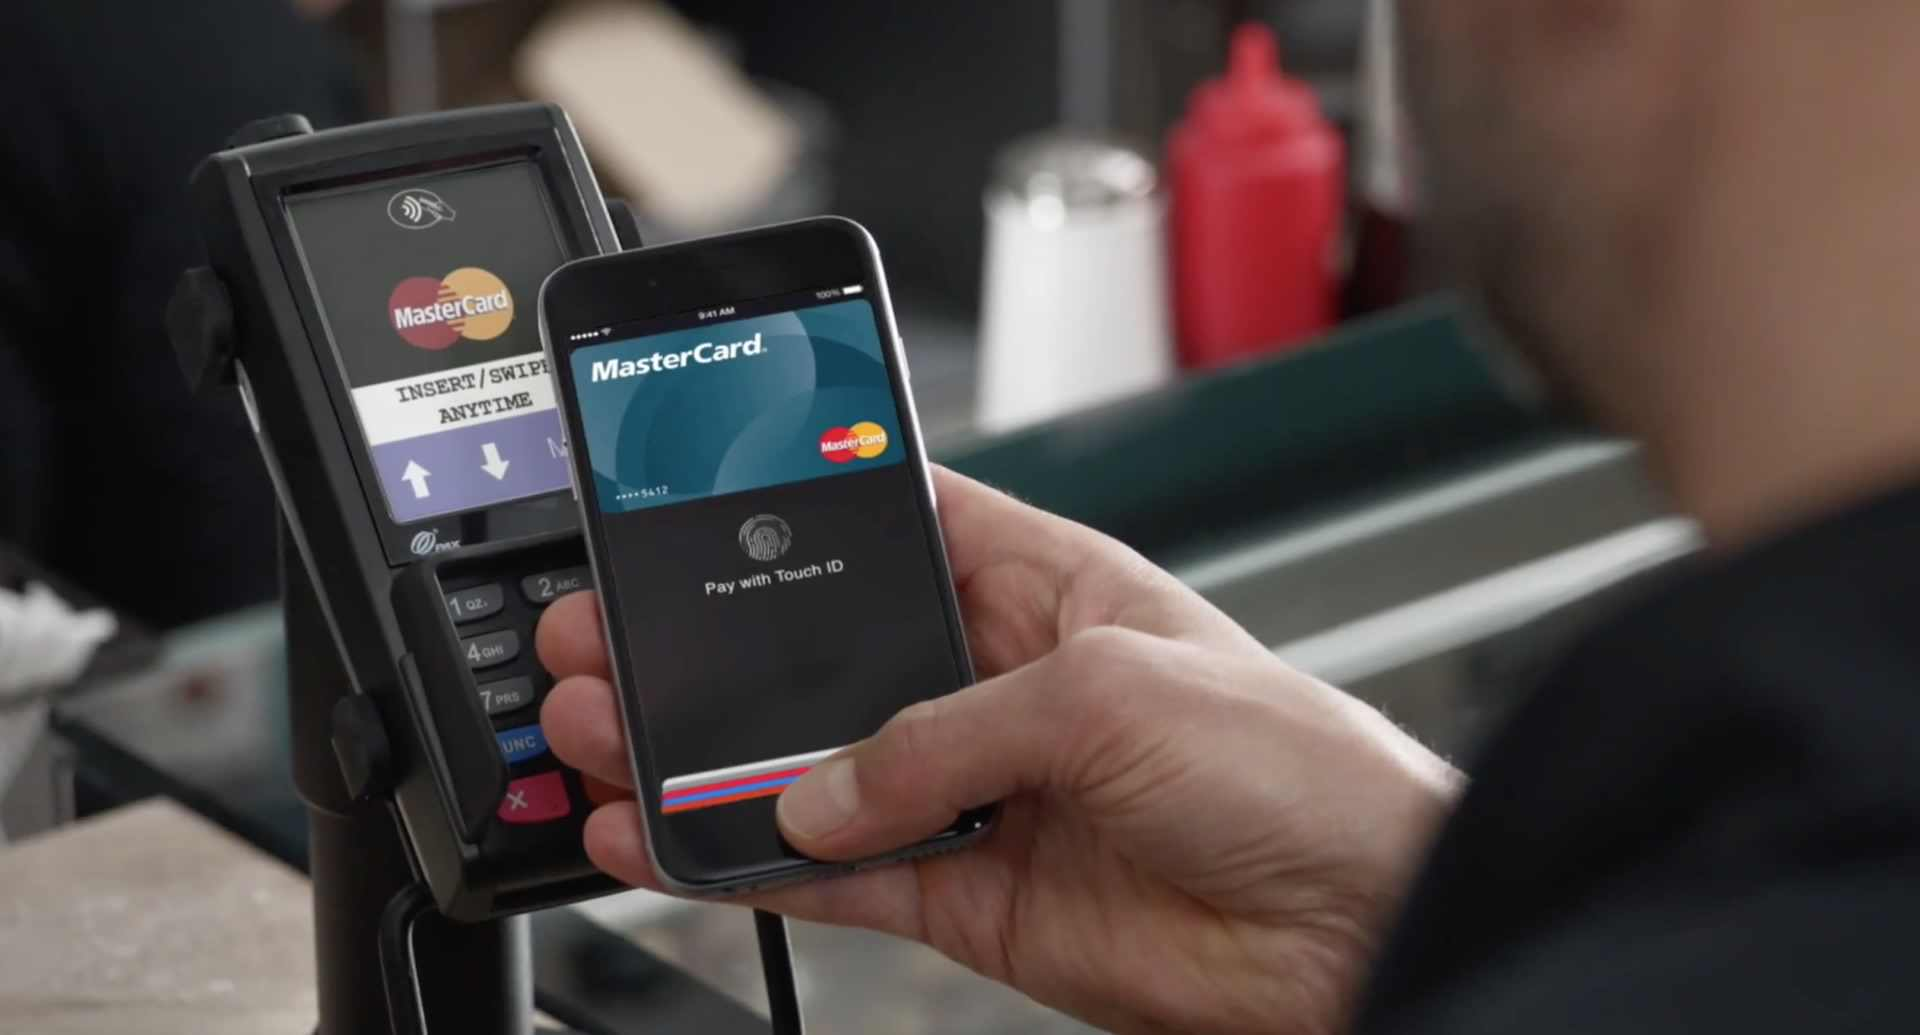 Mastercard added 7m mobile wallet customers in Egypt In 3 years